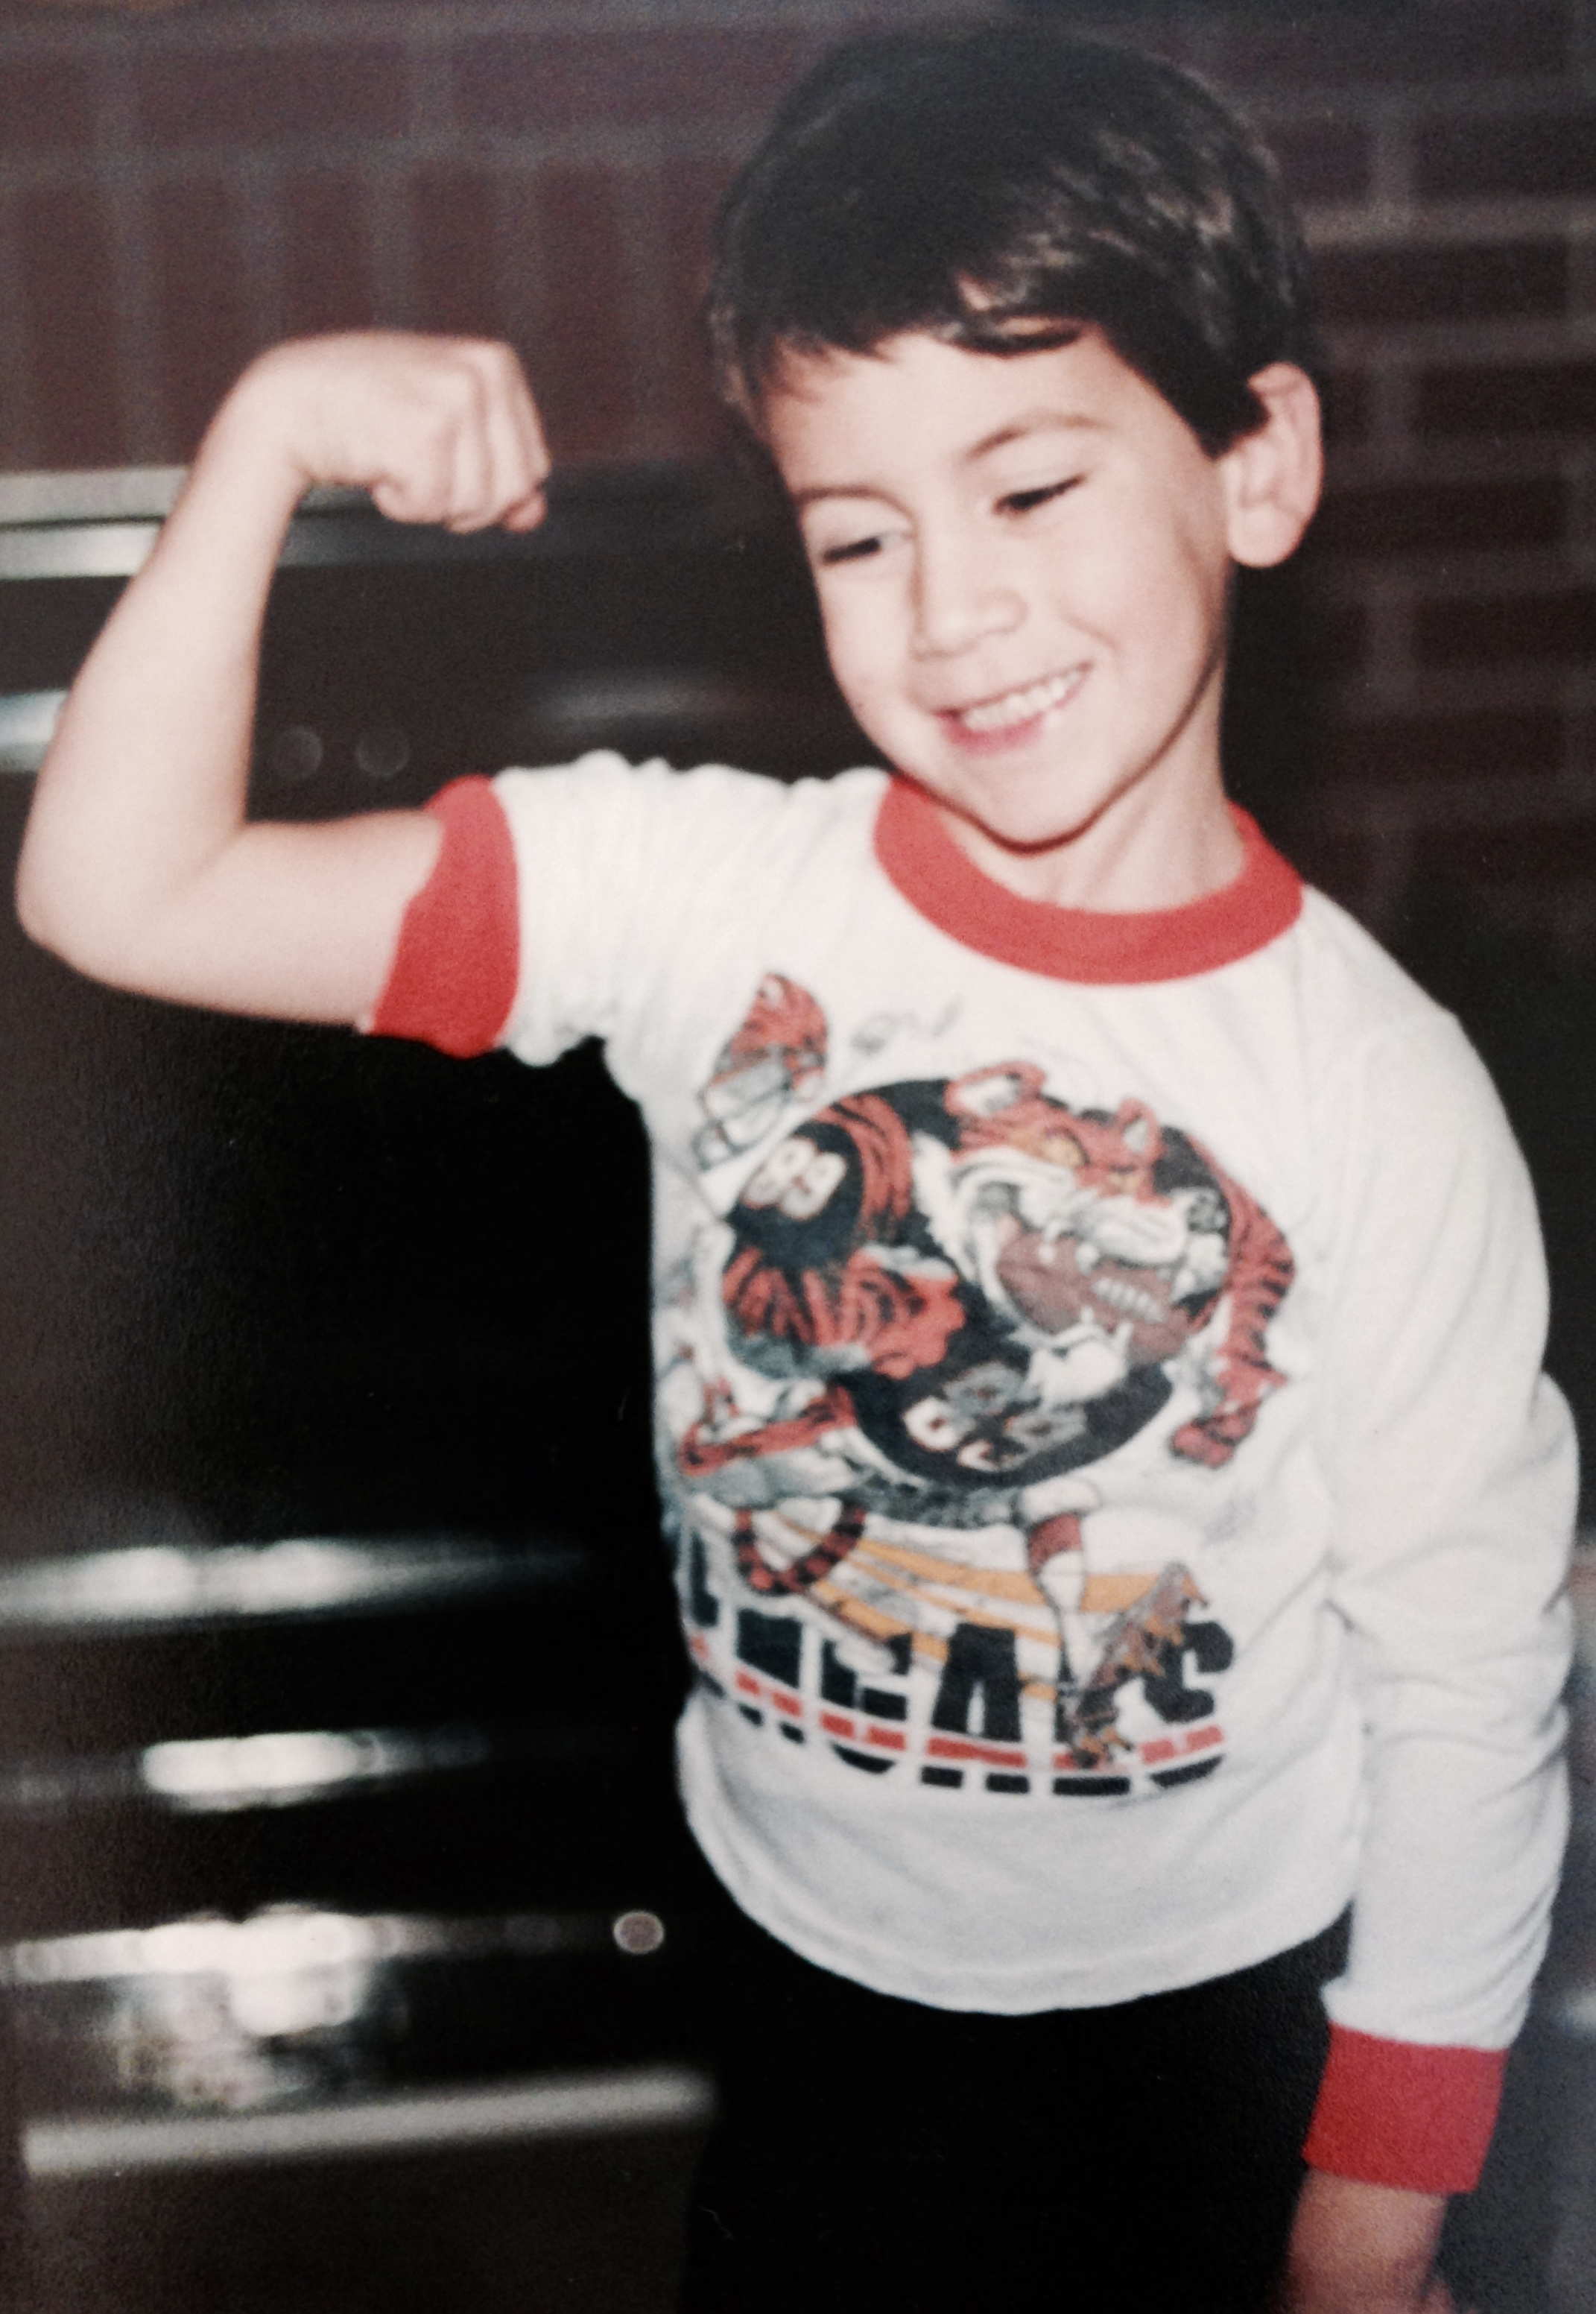 be strong son flexing his muscles